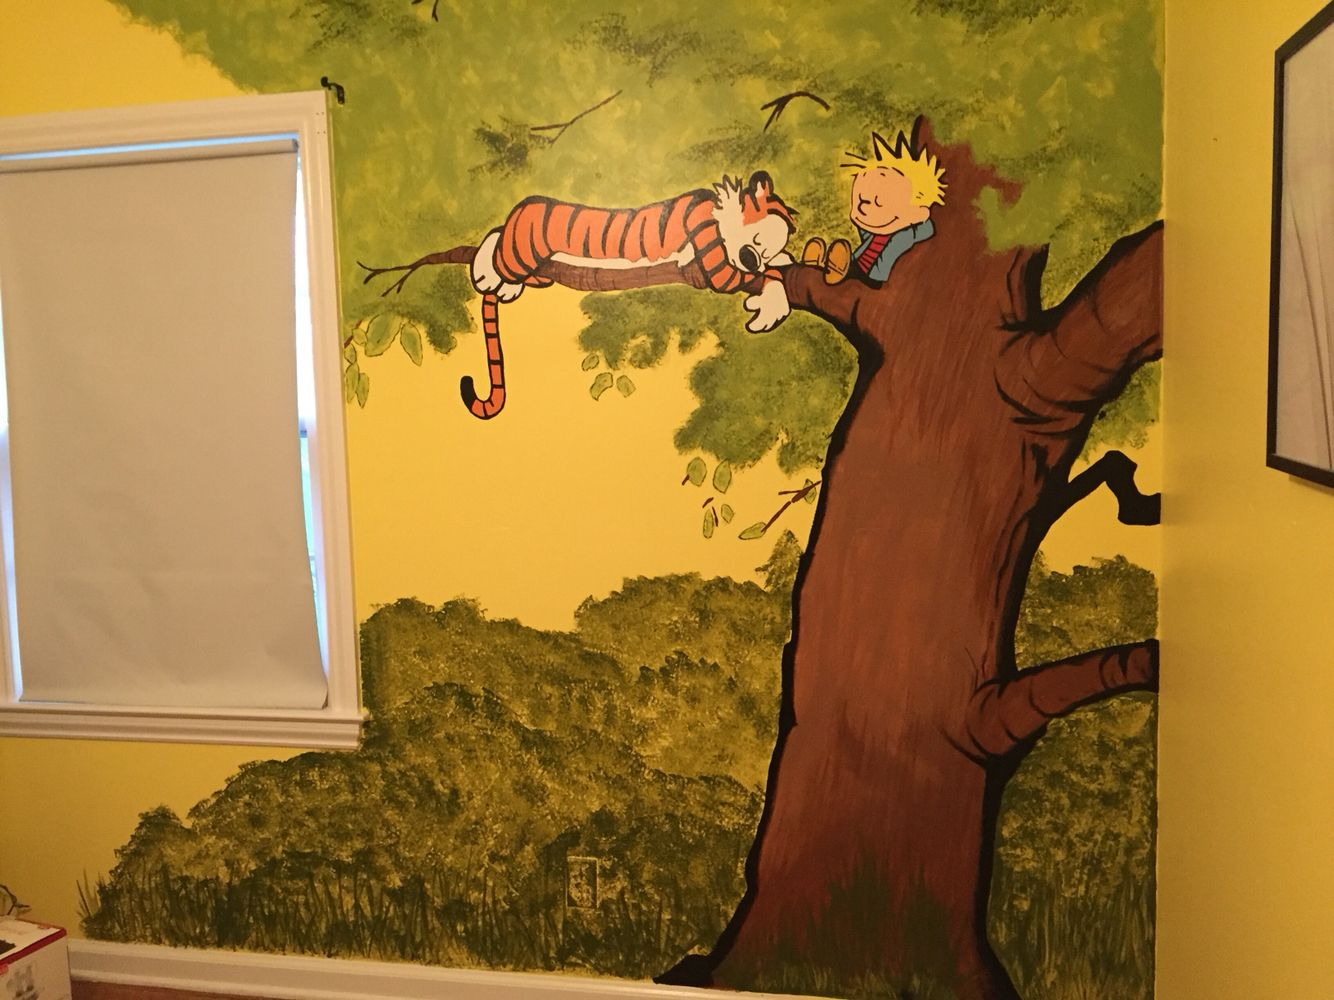 Painted a mural in my nursery this past weekend with my mother in law. I think it turned out super cute.